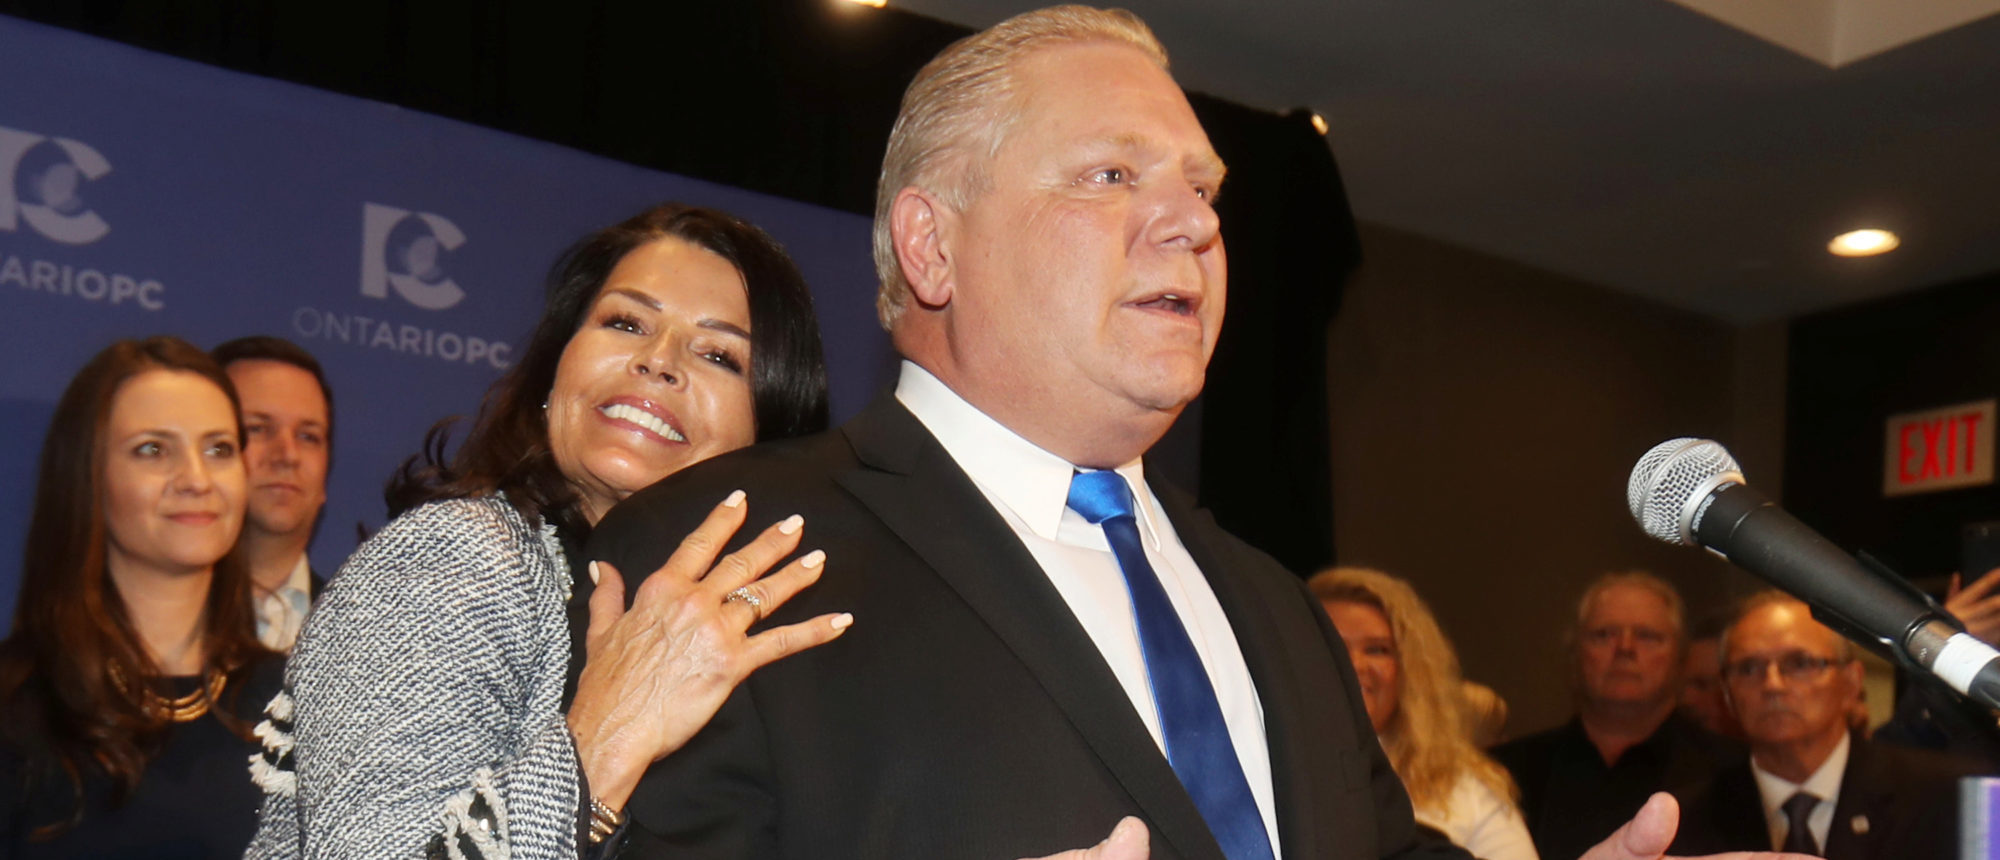 Progressive Conservatives leadership race winner Doug Ford speaks with his wife Karla in Markham, Ontario, Canada, March 10, 2018. REUTERS/Fred Thornhill